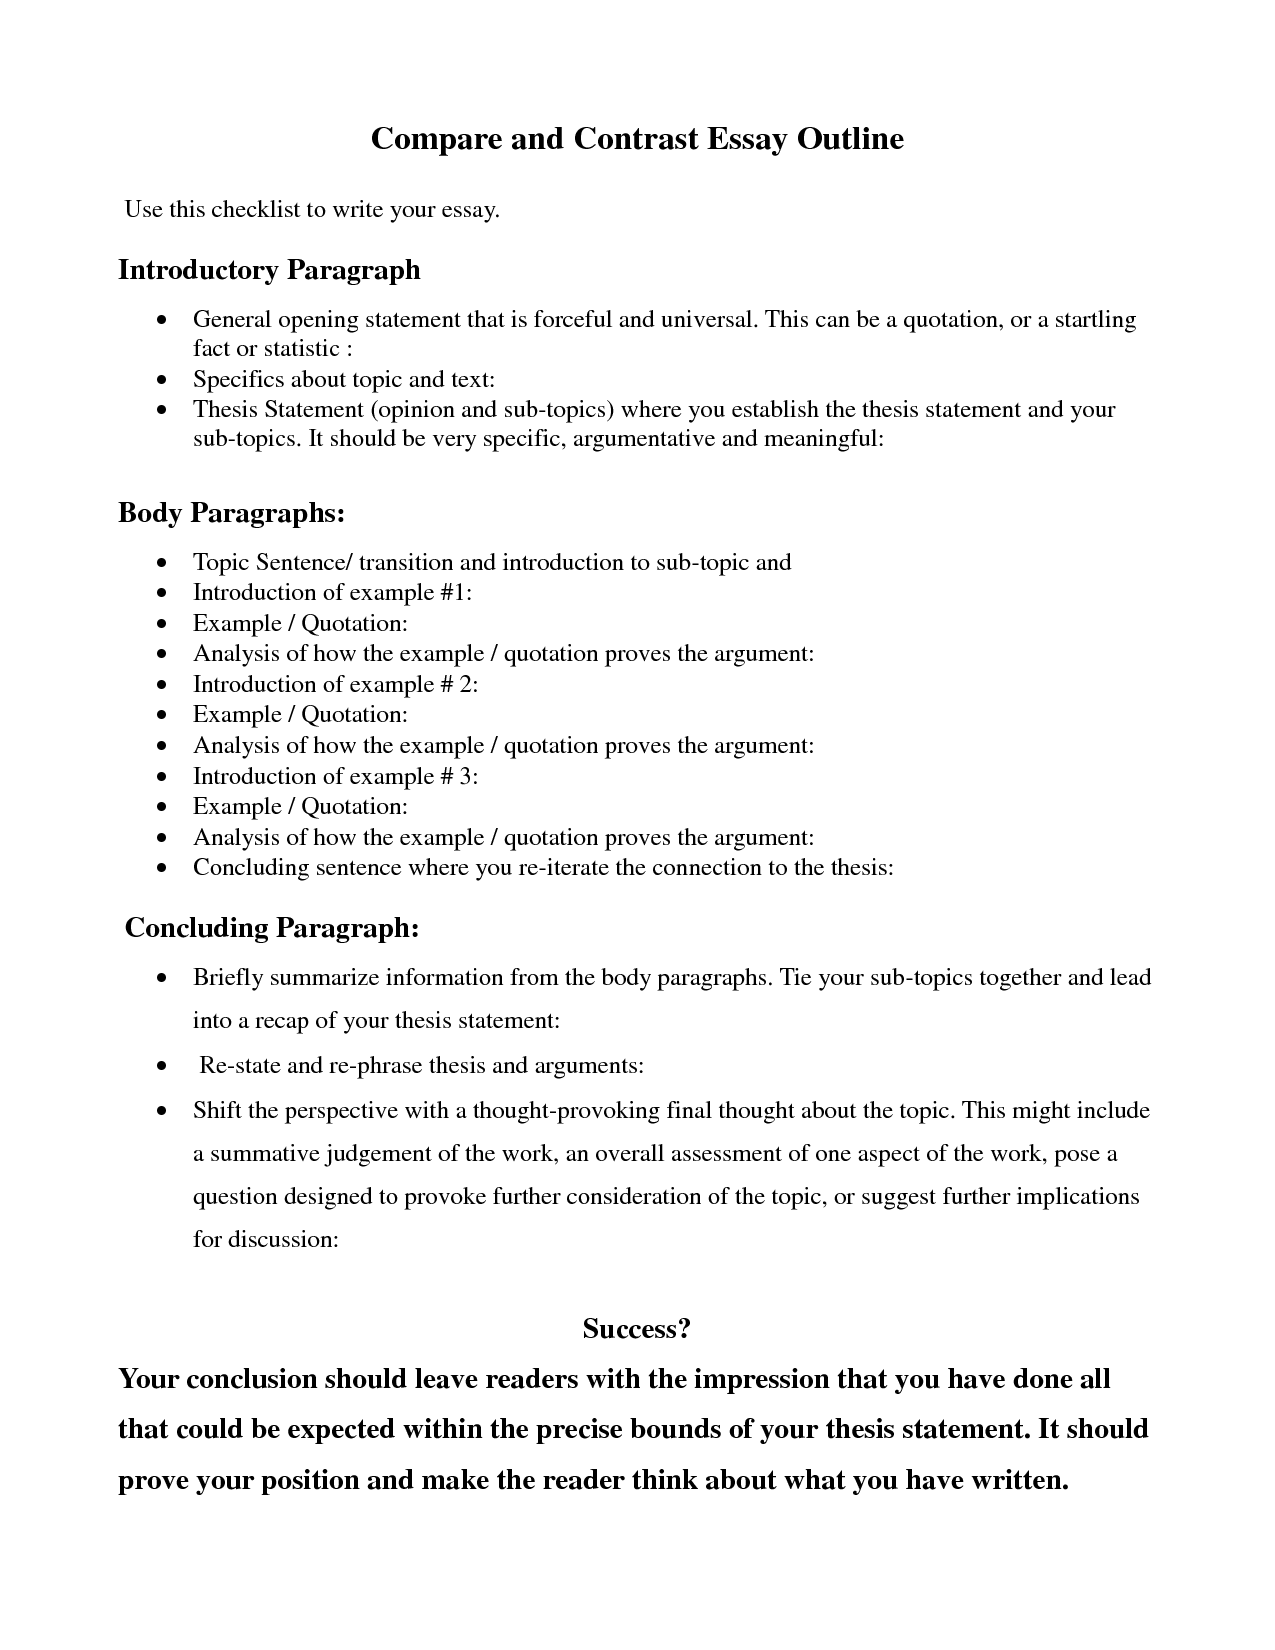 Short English Essays For Students Comparecontrast Essay Outline  Google Search Academic Help Writing also The Yellow Wallpaper Analysis Essay Comparecontrast Essay Outline  Google Search  Education  Thesis  Research Paper Essay Topics